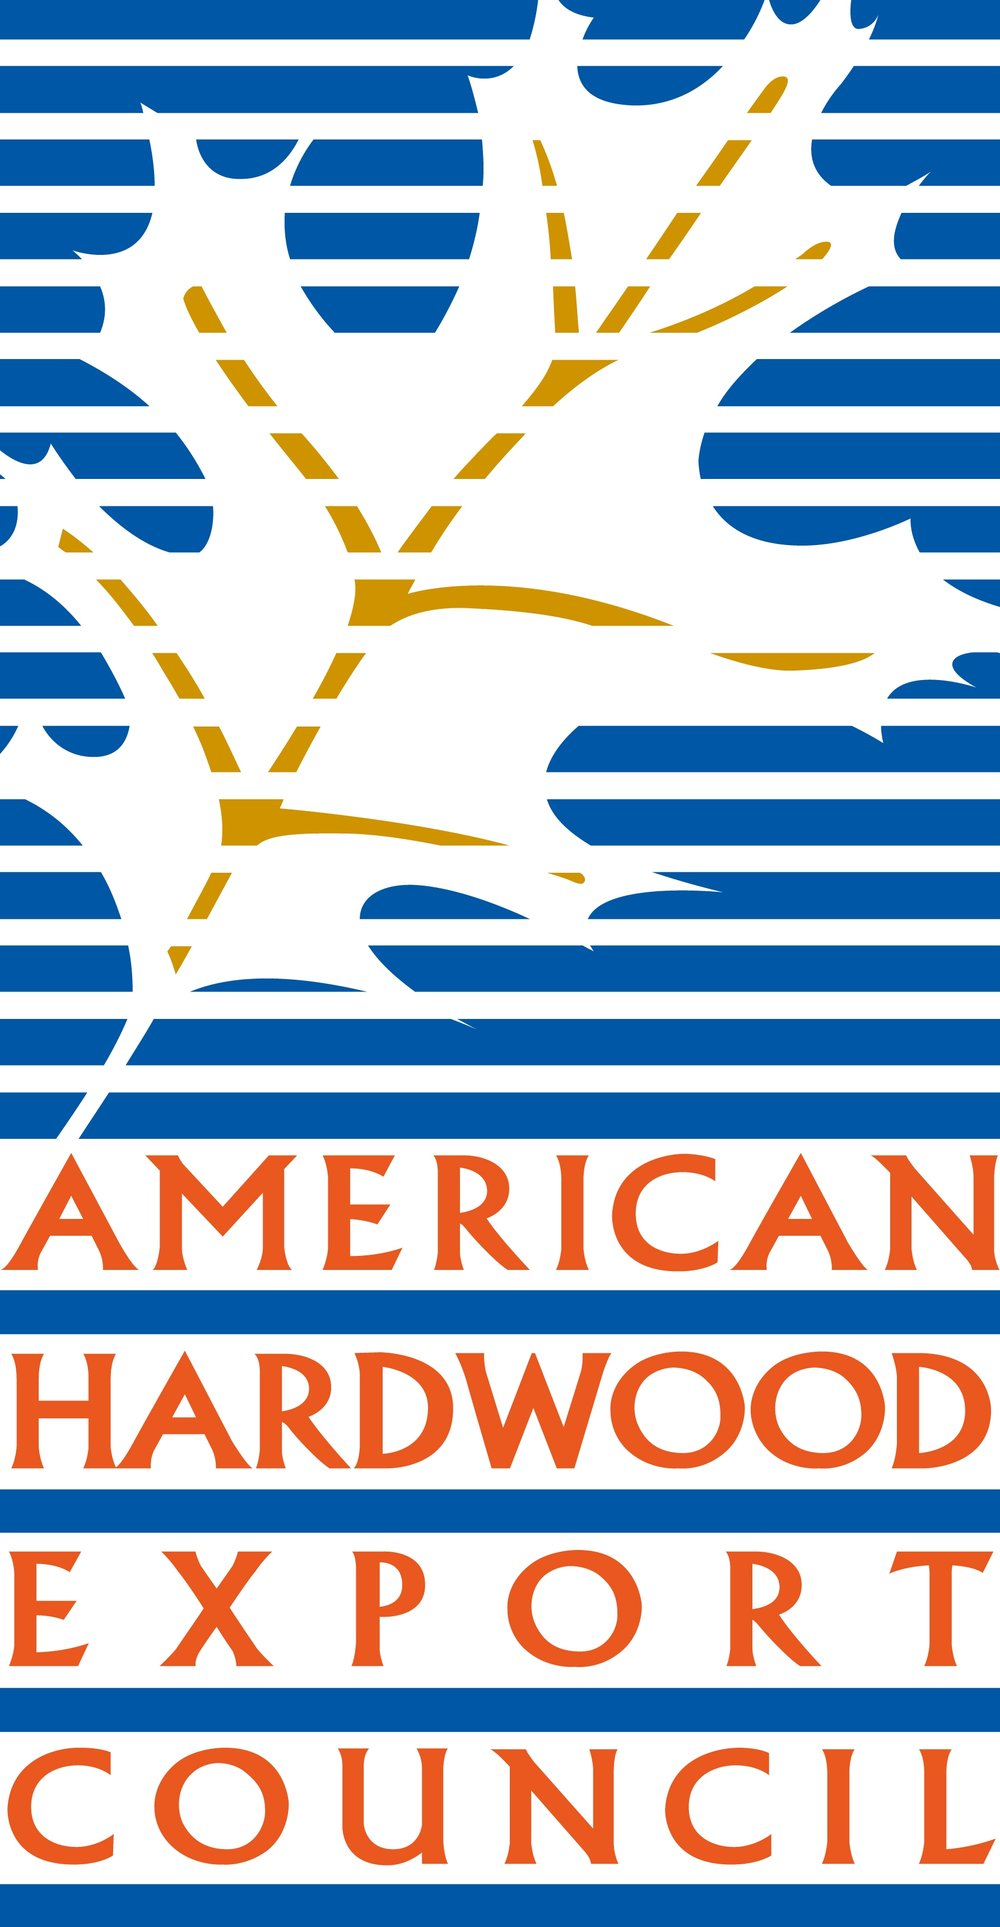 The American Hardwood Export Council